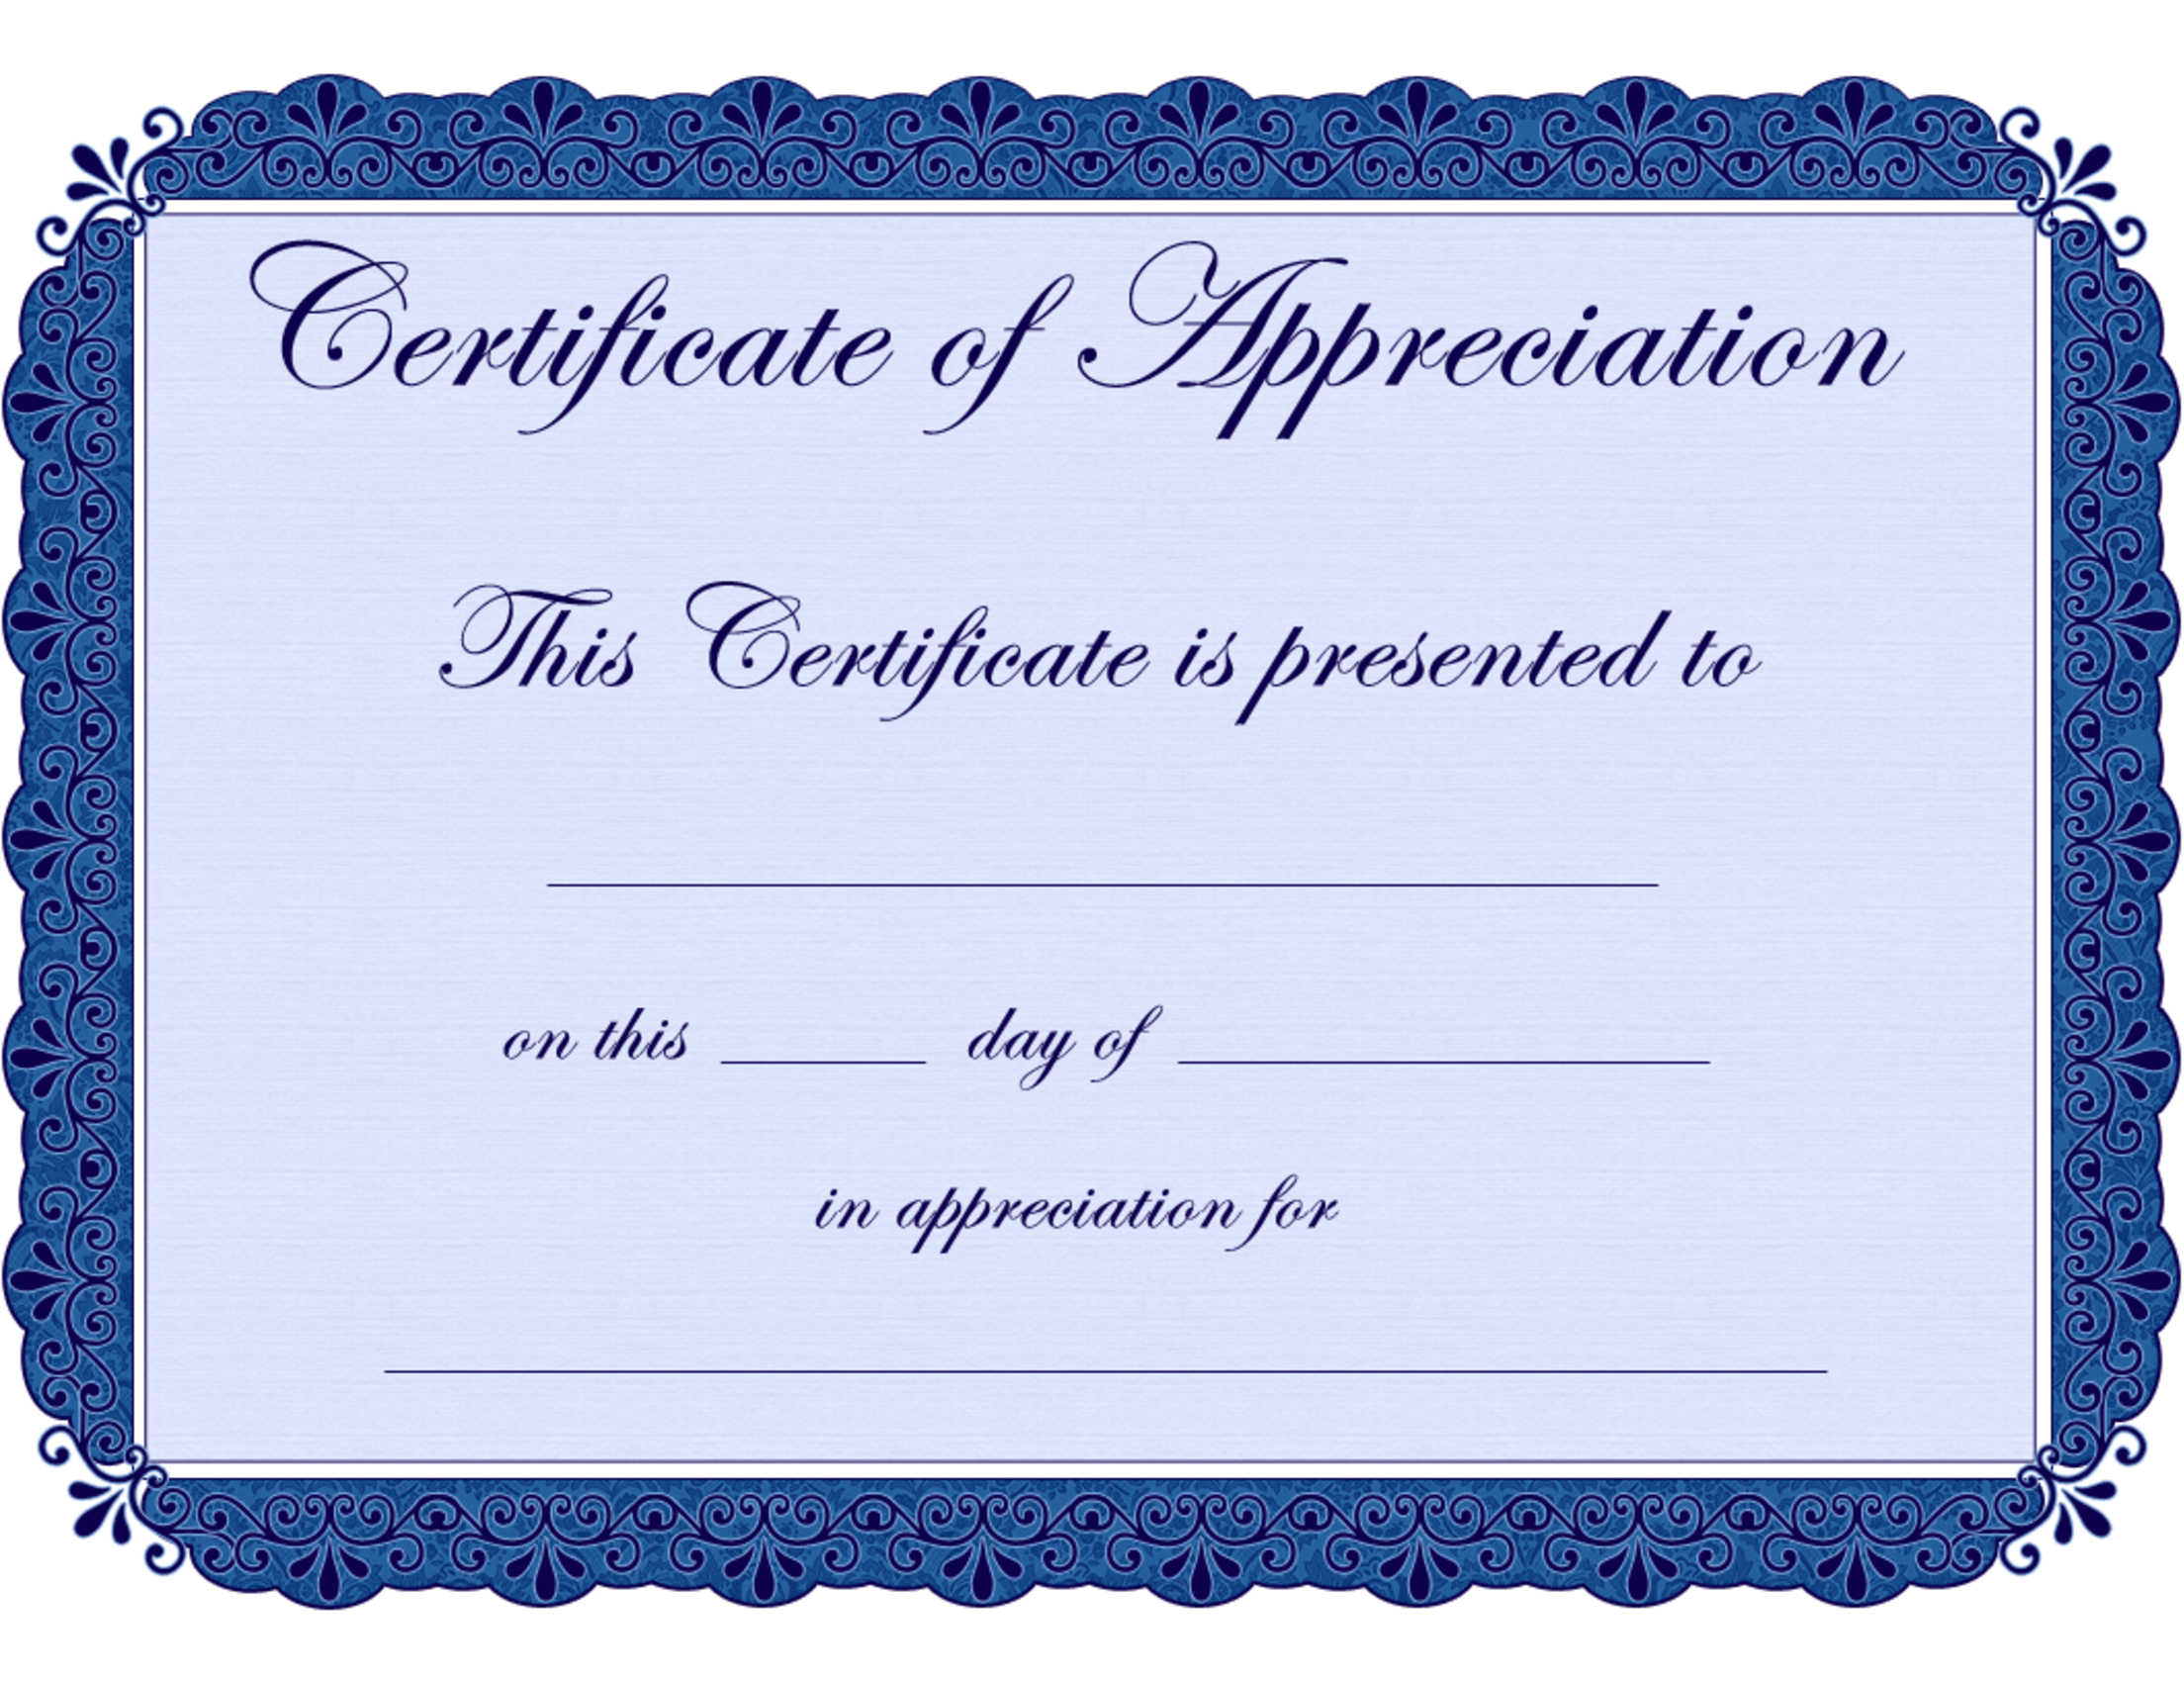 Free Printable Certificates Certificate Of Appreciation within Free Certificate Of Excellence Template